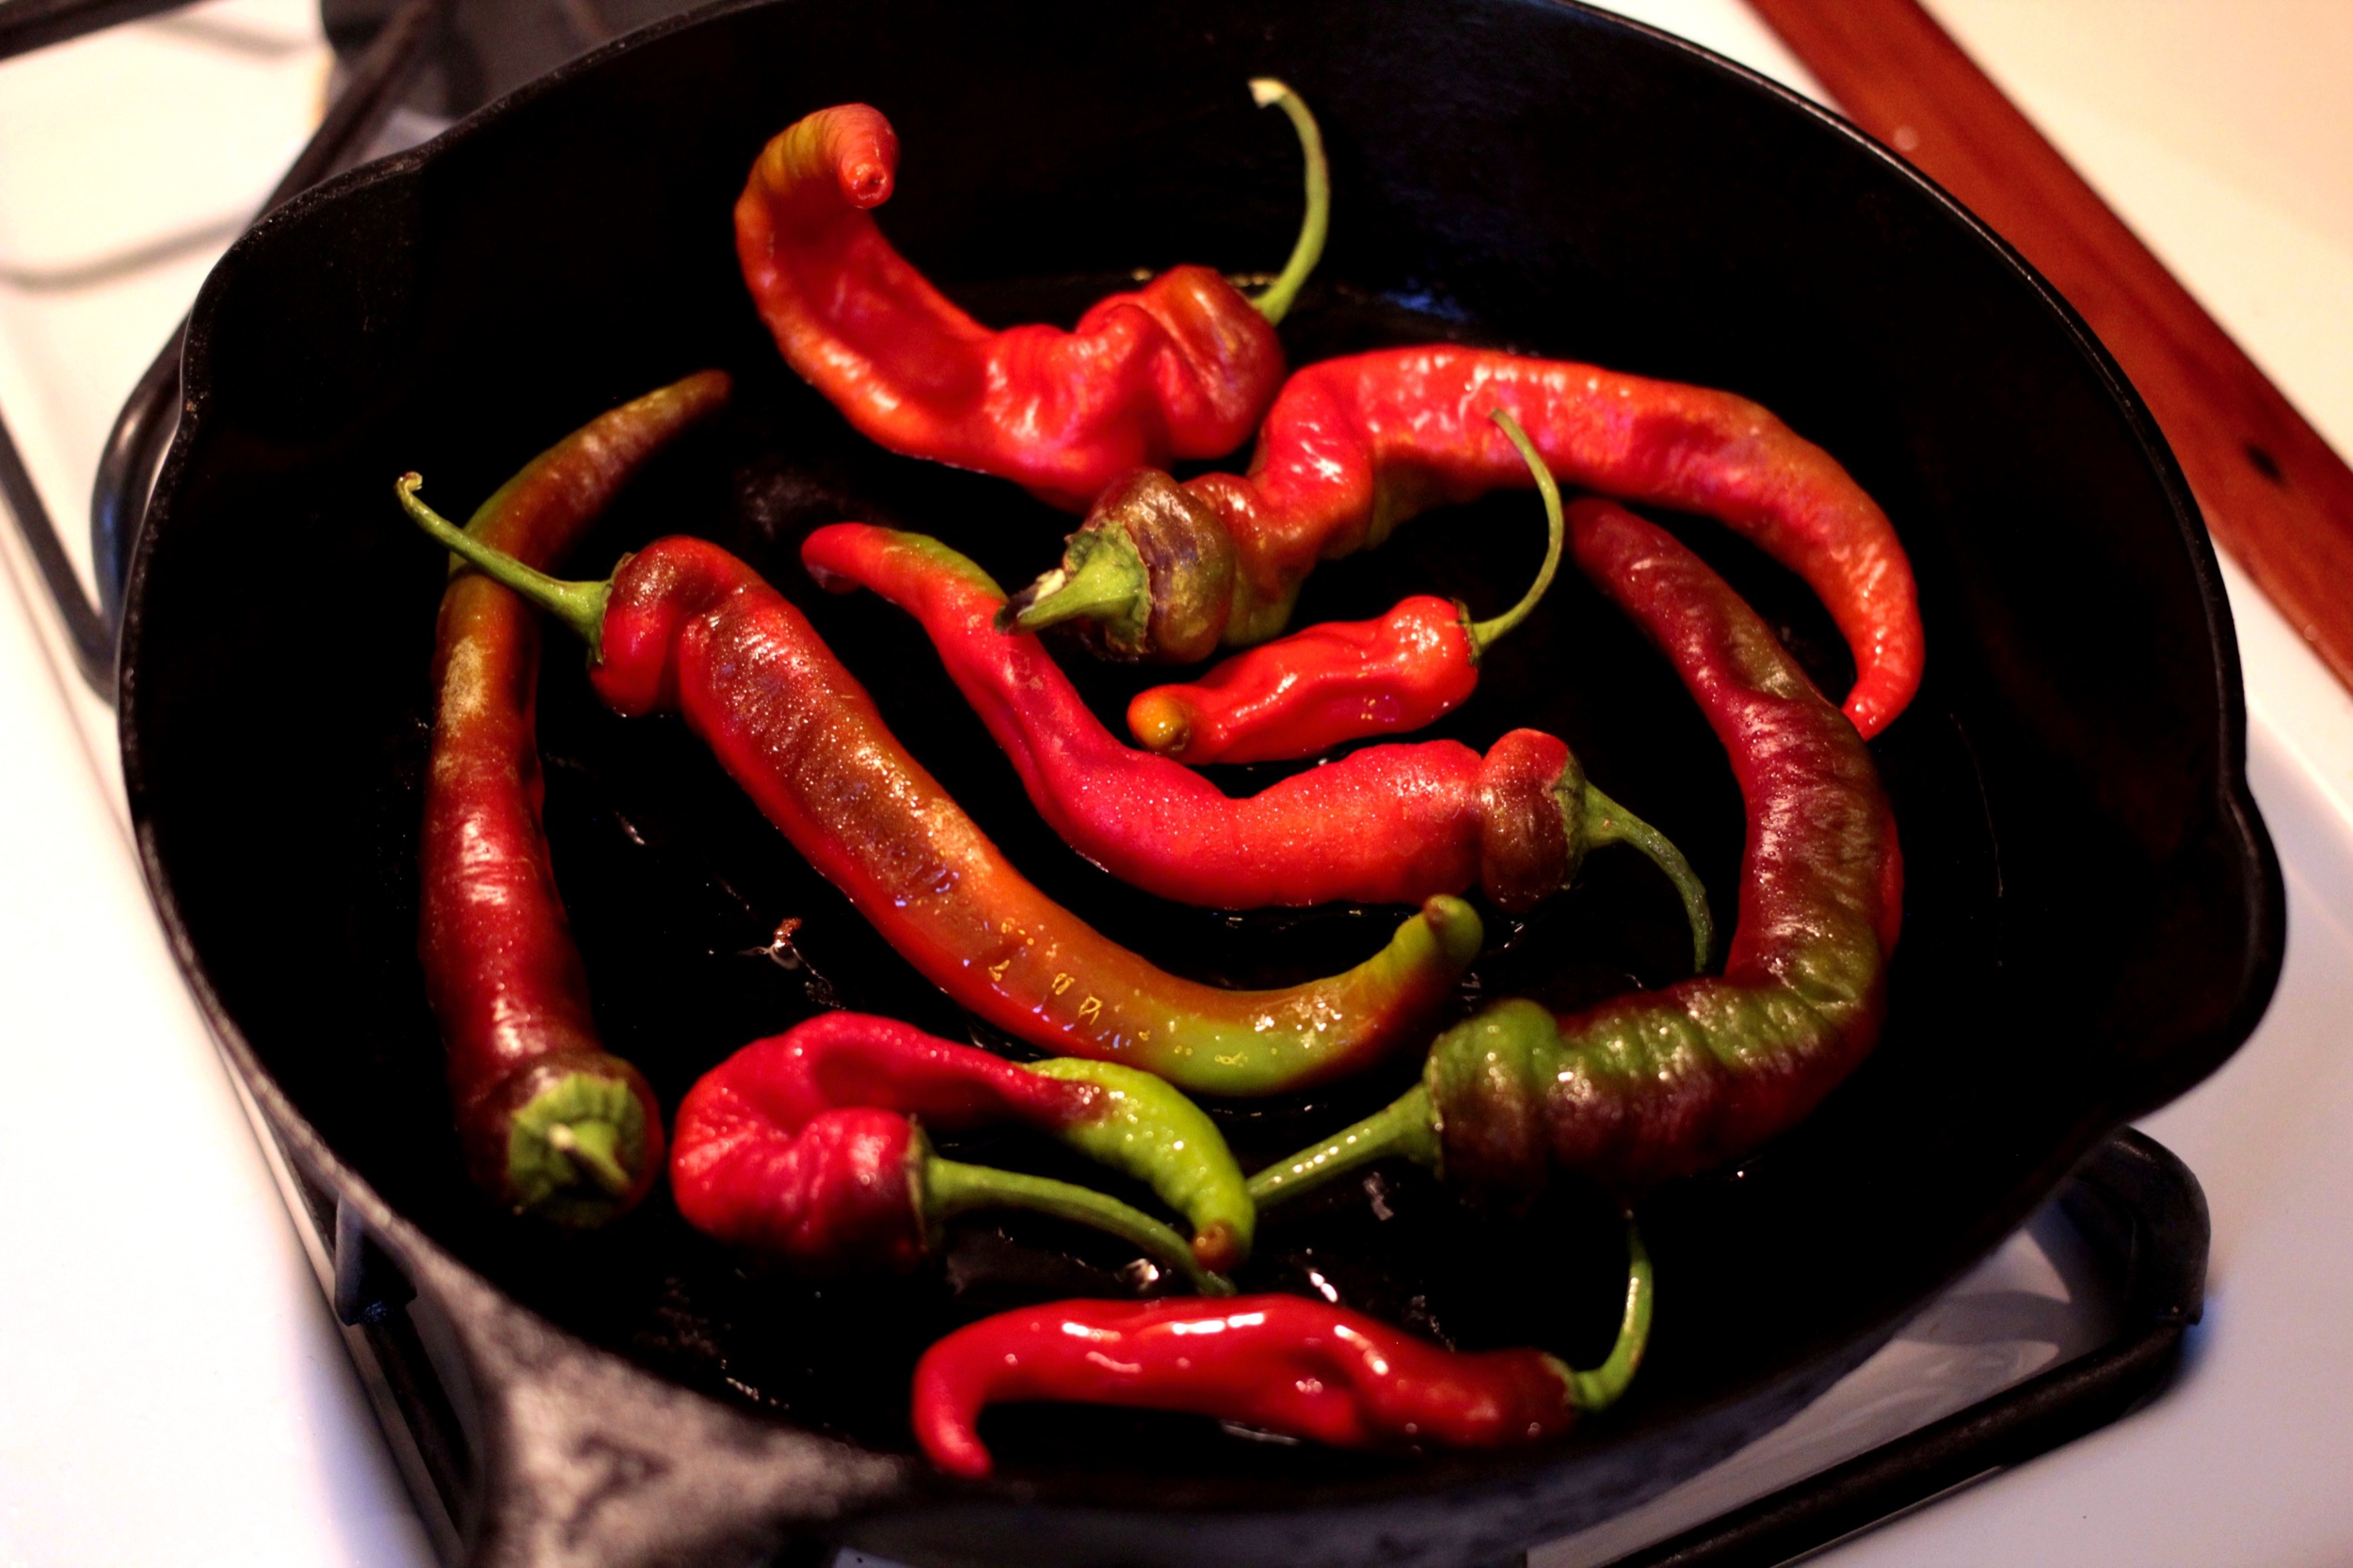 A single, uncrowded layer of peppers.